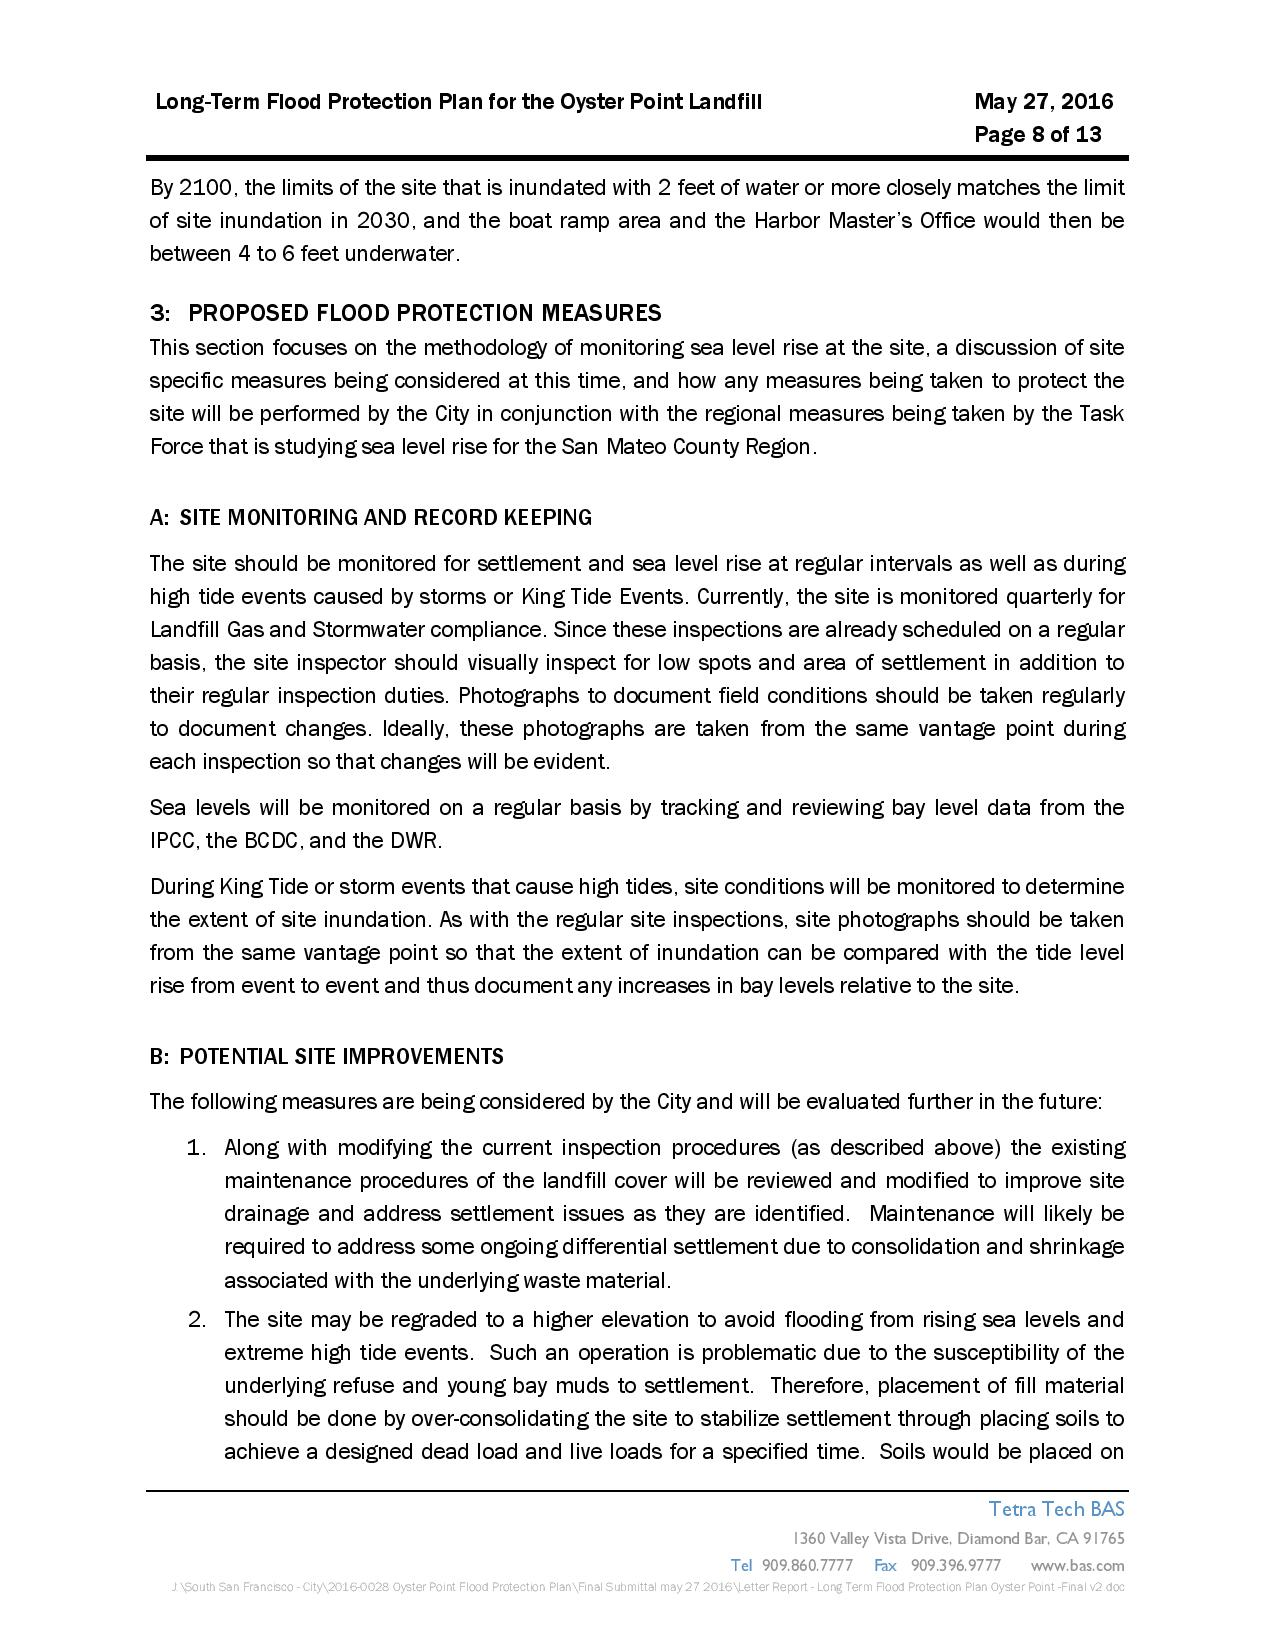 City of SSF Oyster Pt. Landfill Long-Term Flood Protection Letter & Plan-2-page-010